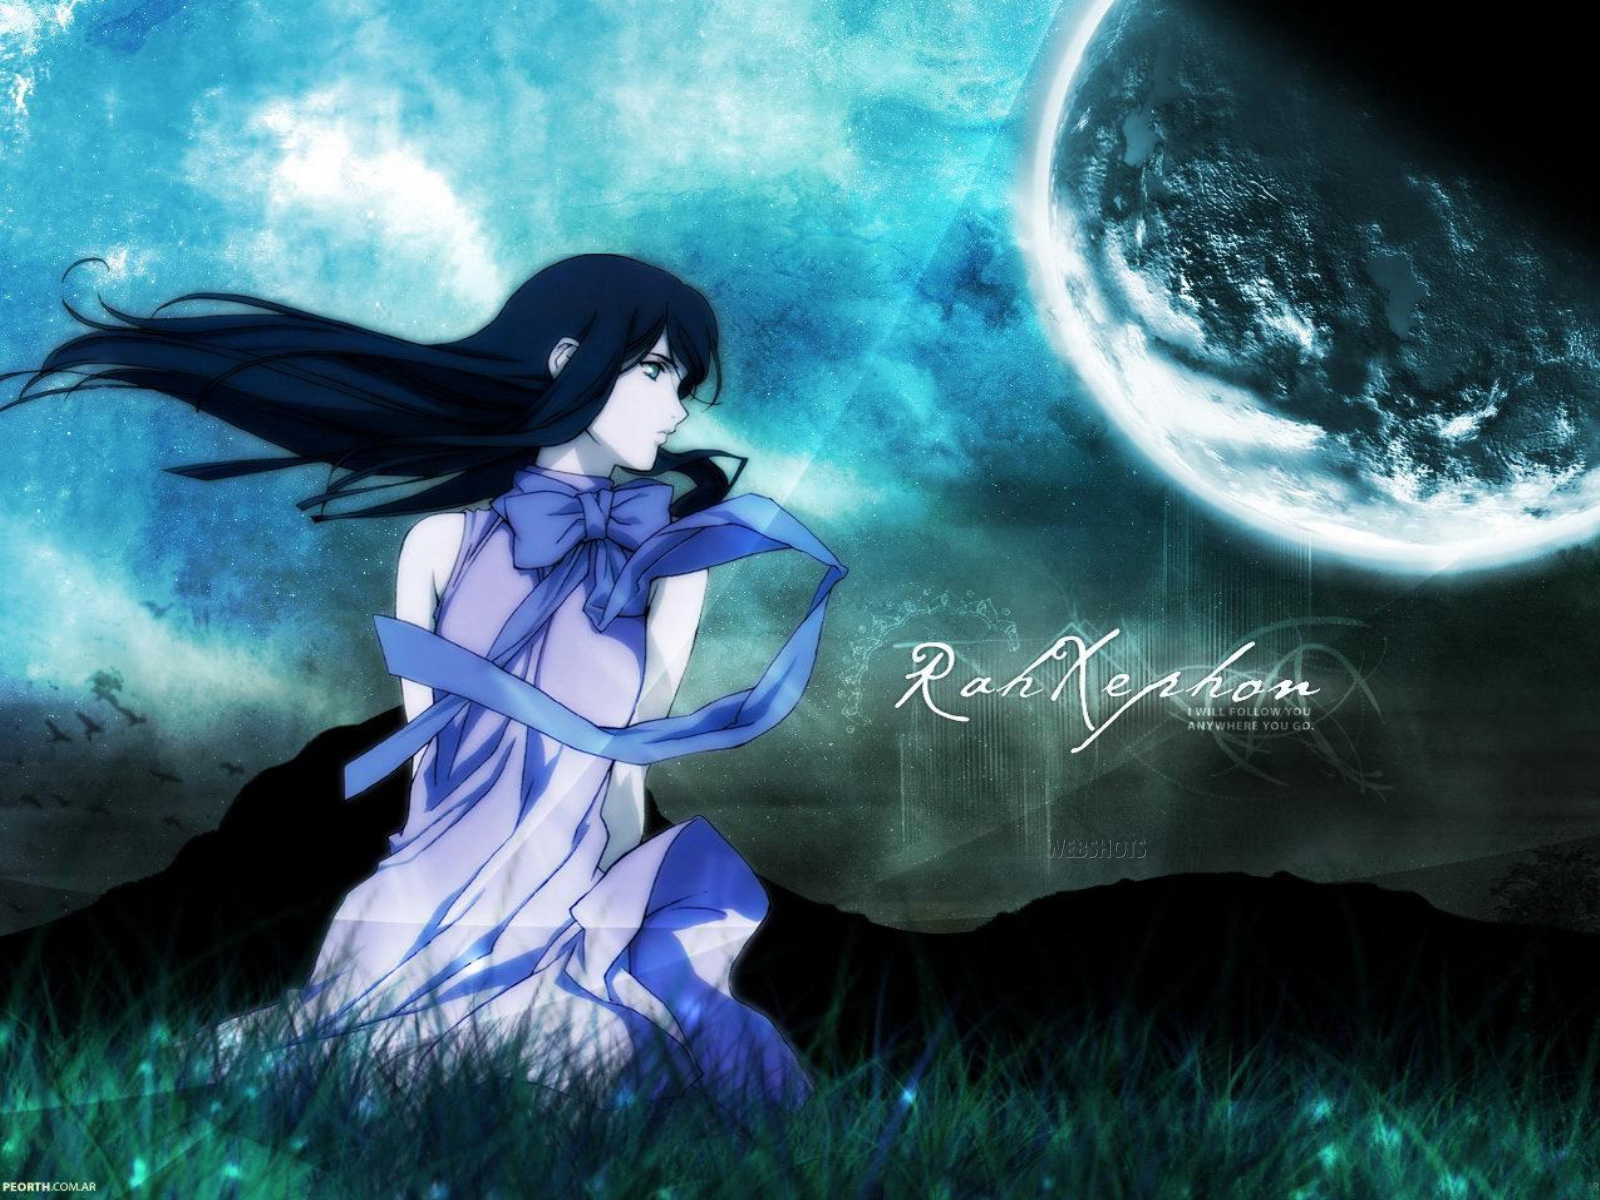 Cool anime 3d wallpapers 3d wallpapers - 3d anime wallpaper ...